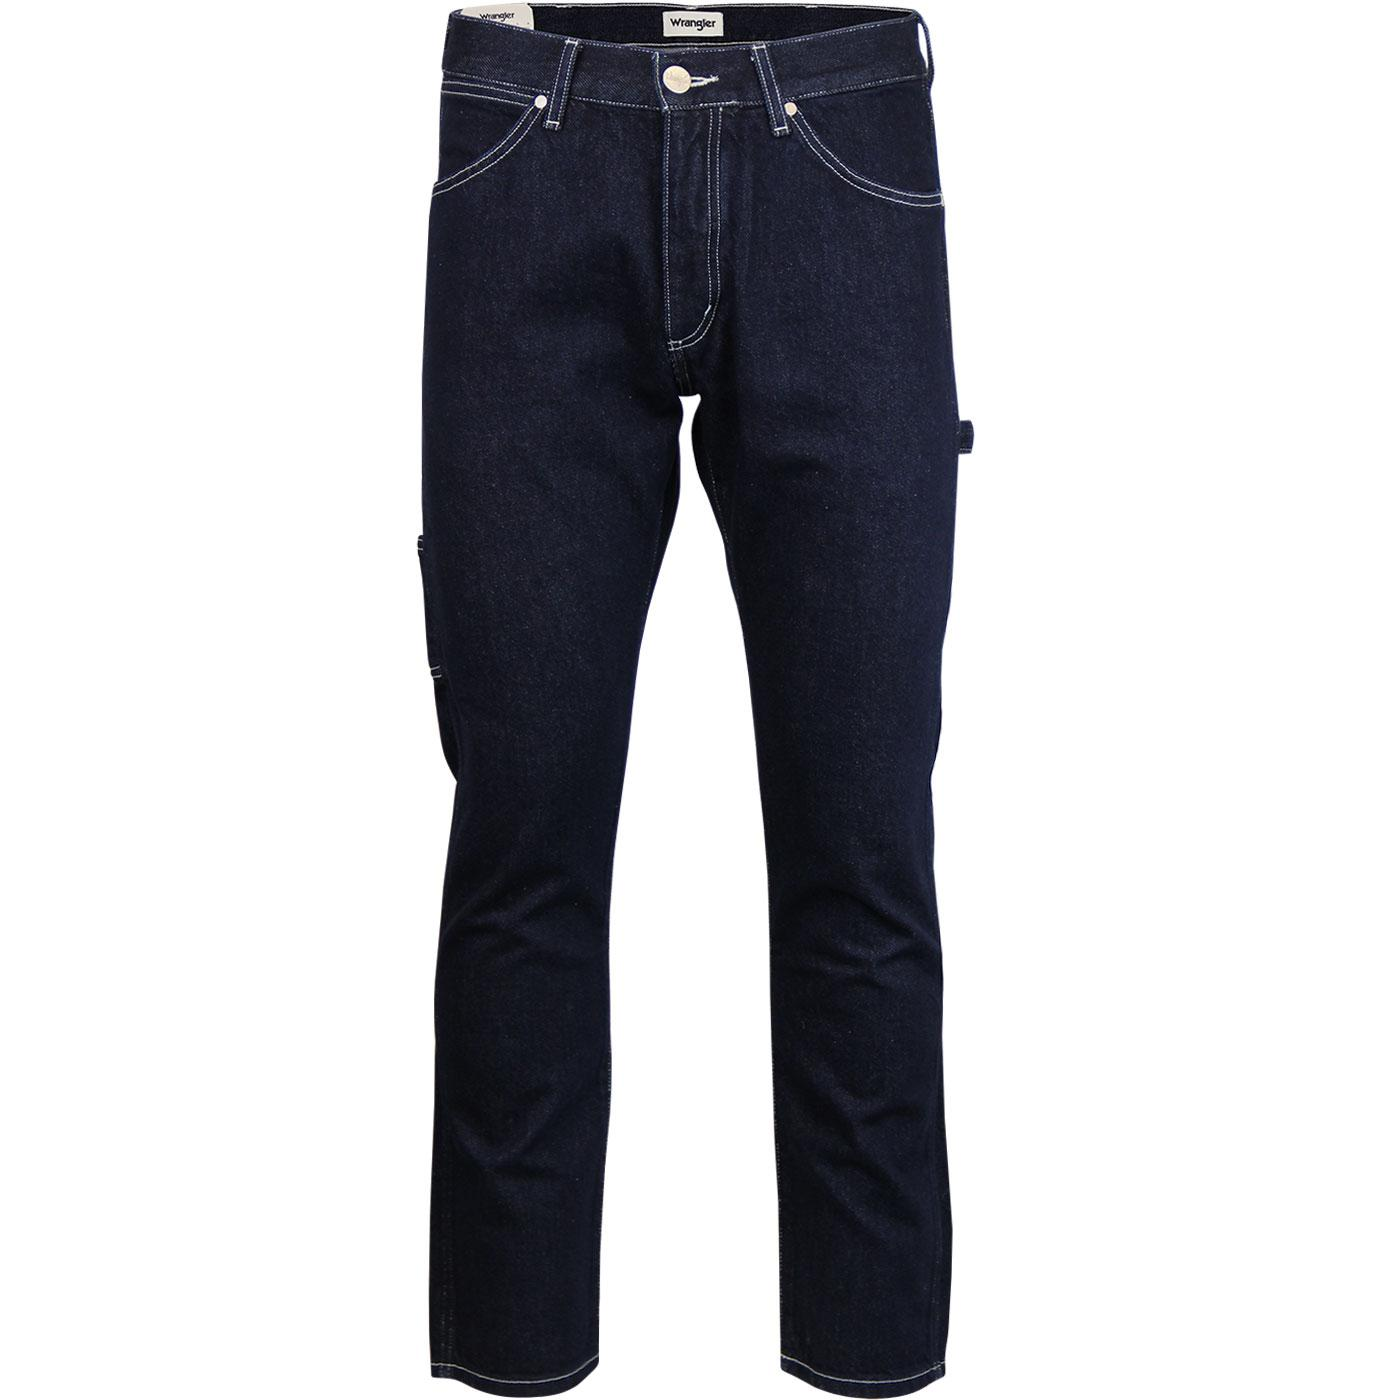 Carpenter WRANGLER Loose Fit Denim Jeans Raw Edge